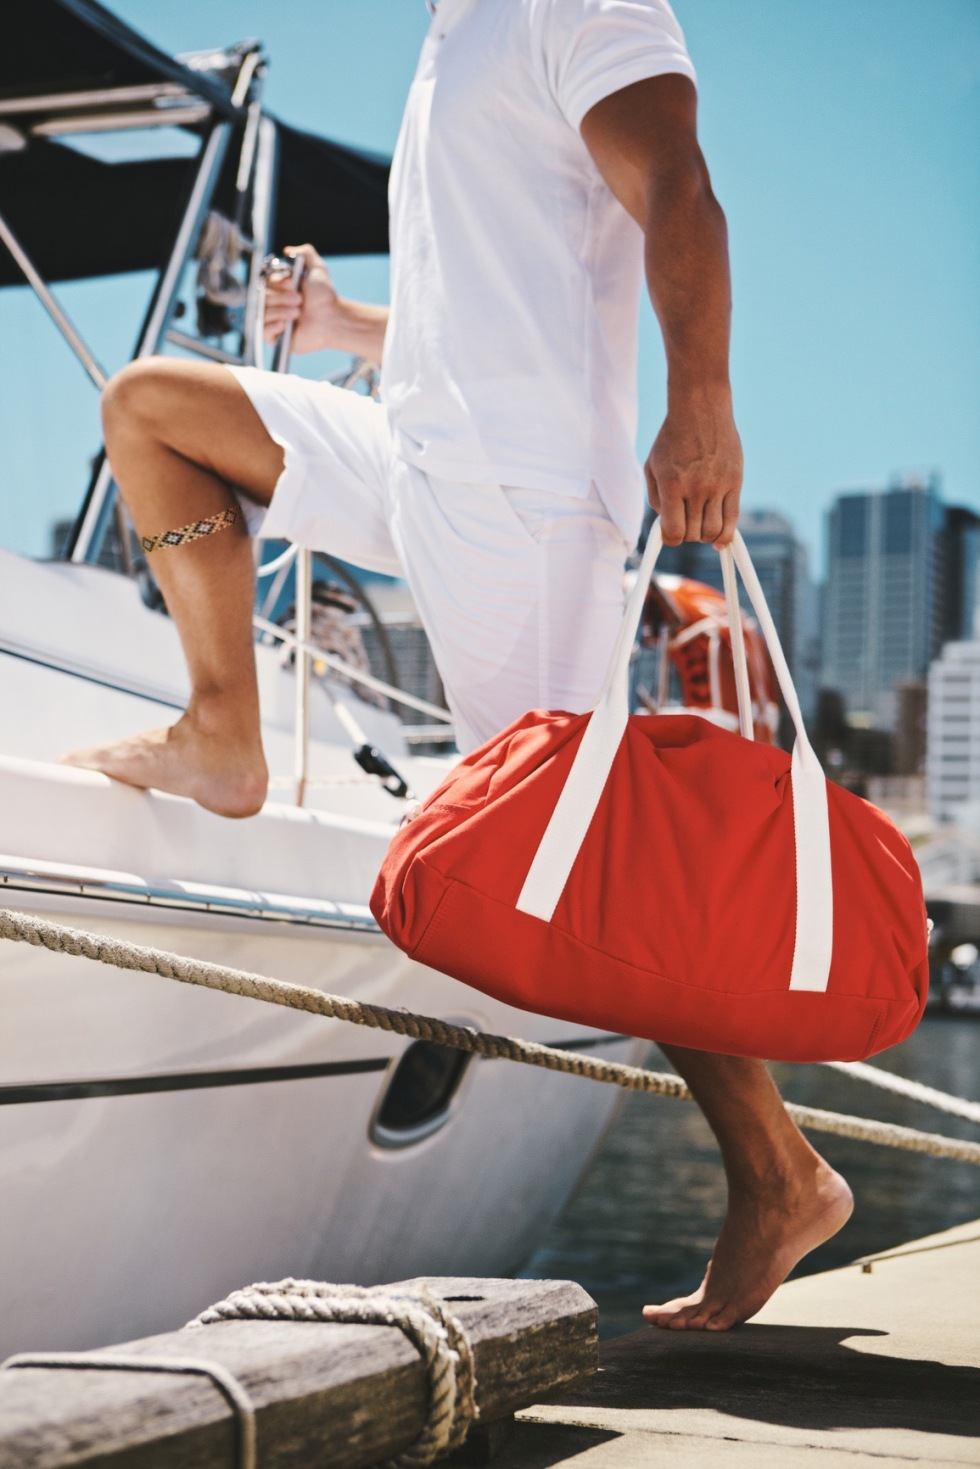 Young man getting in boat holding luggage in hand